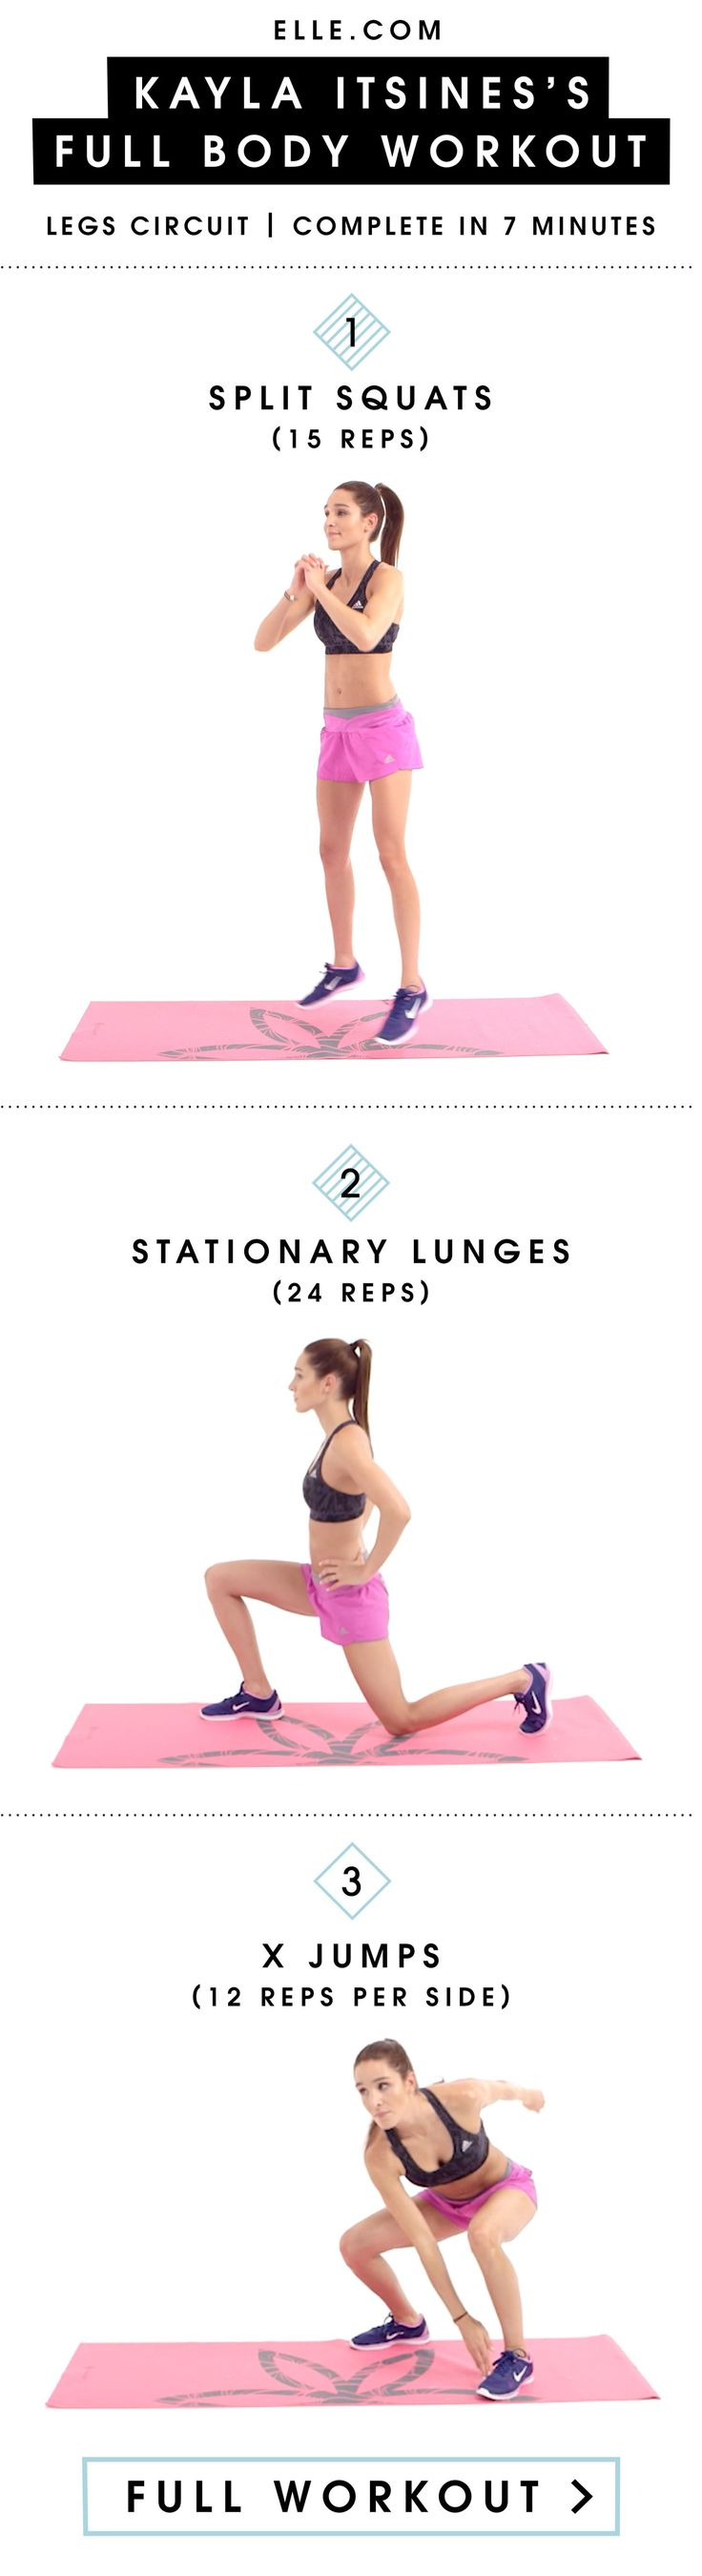 Get+Toned+Legs+In+3+Equipment-Free+Moves+From+Kayla+Itsines  - ELLE.com